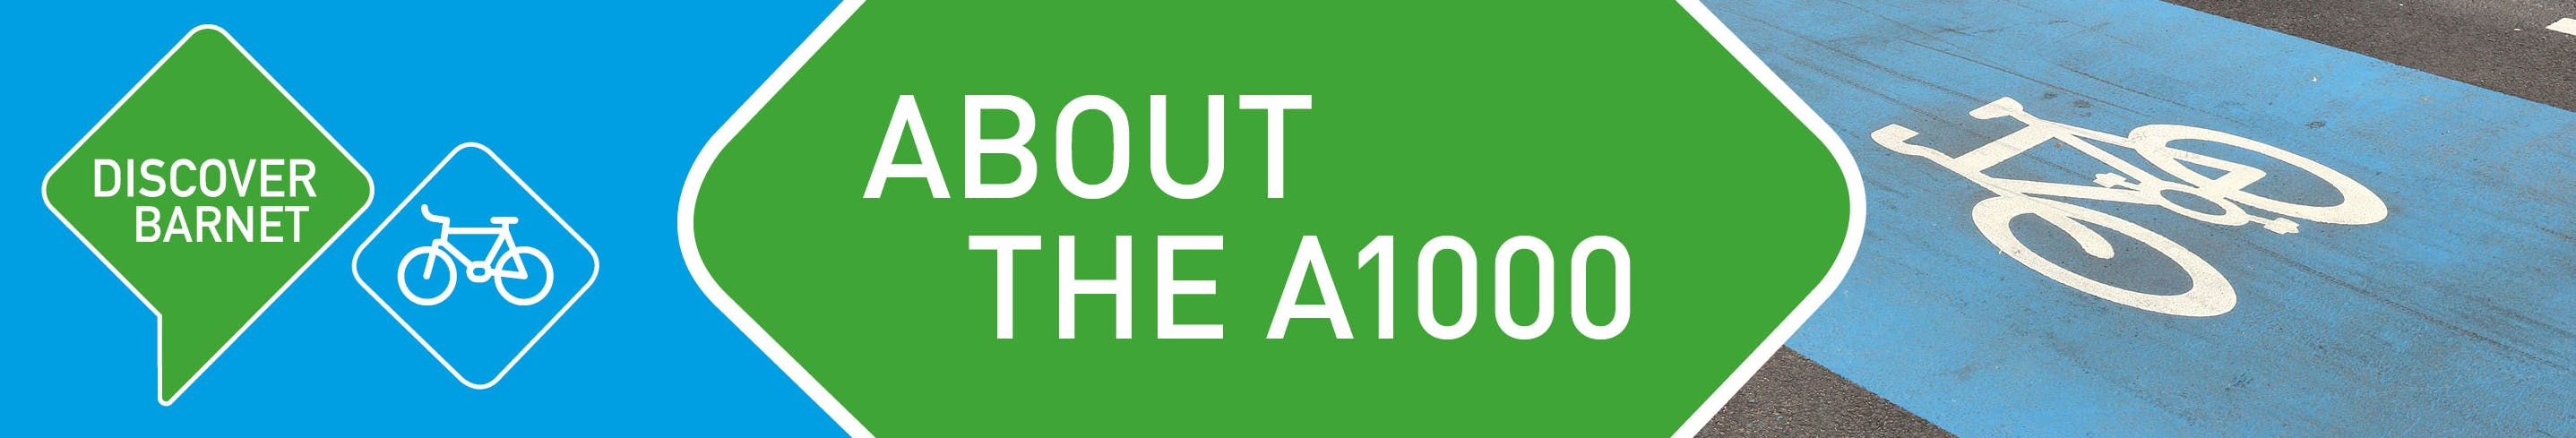 About the A1000